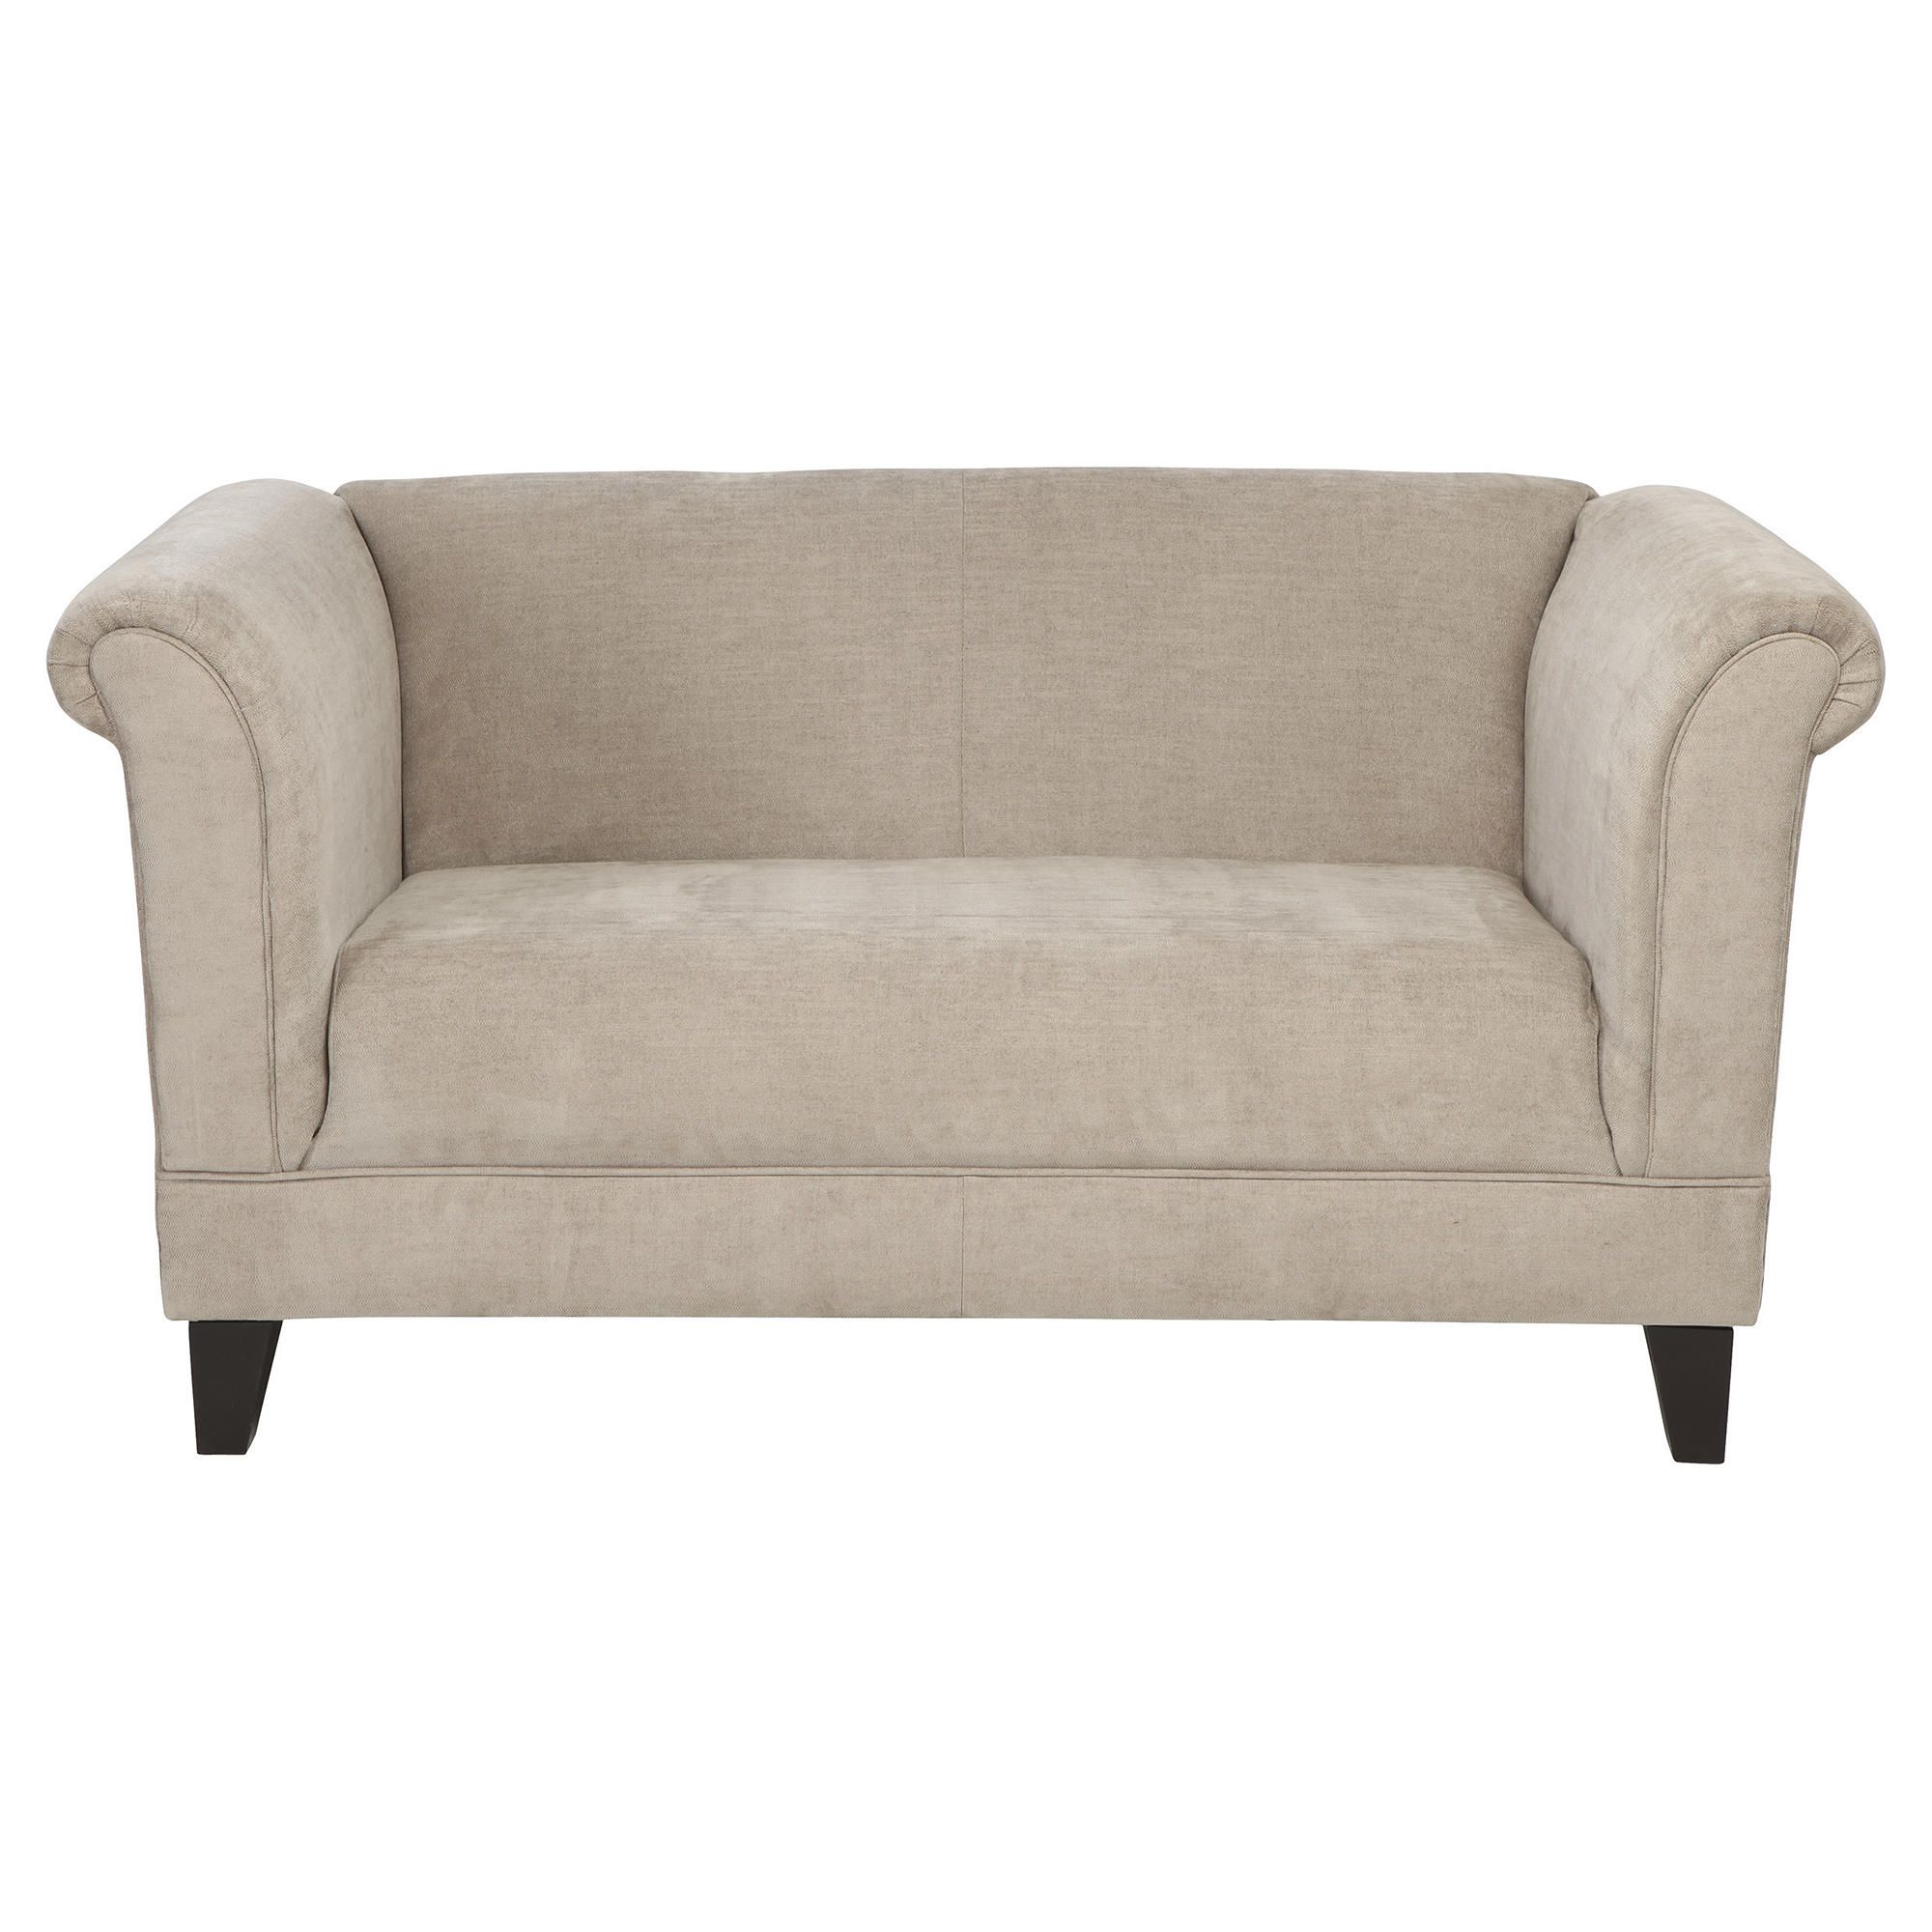 Millie Small Fabric Sofa Mink at Tesco Direct